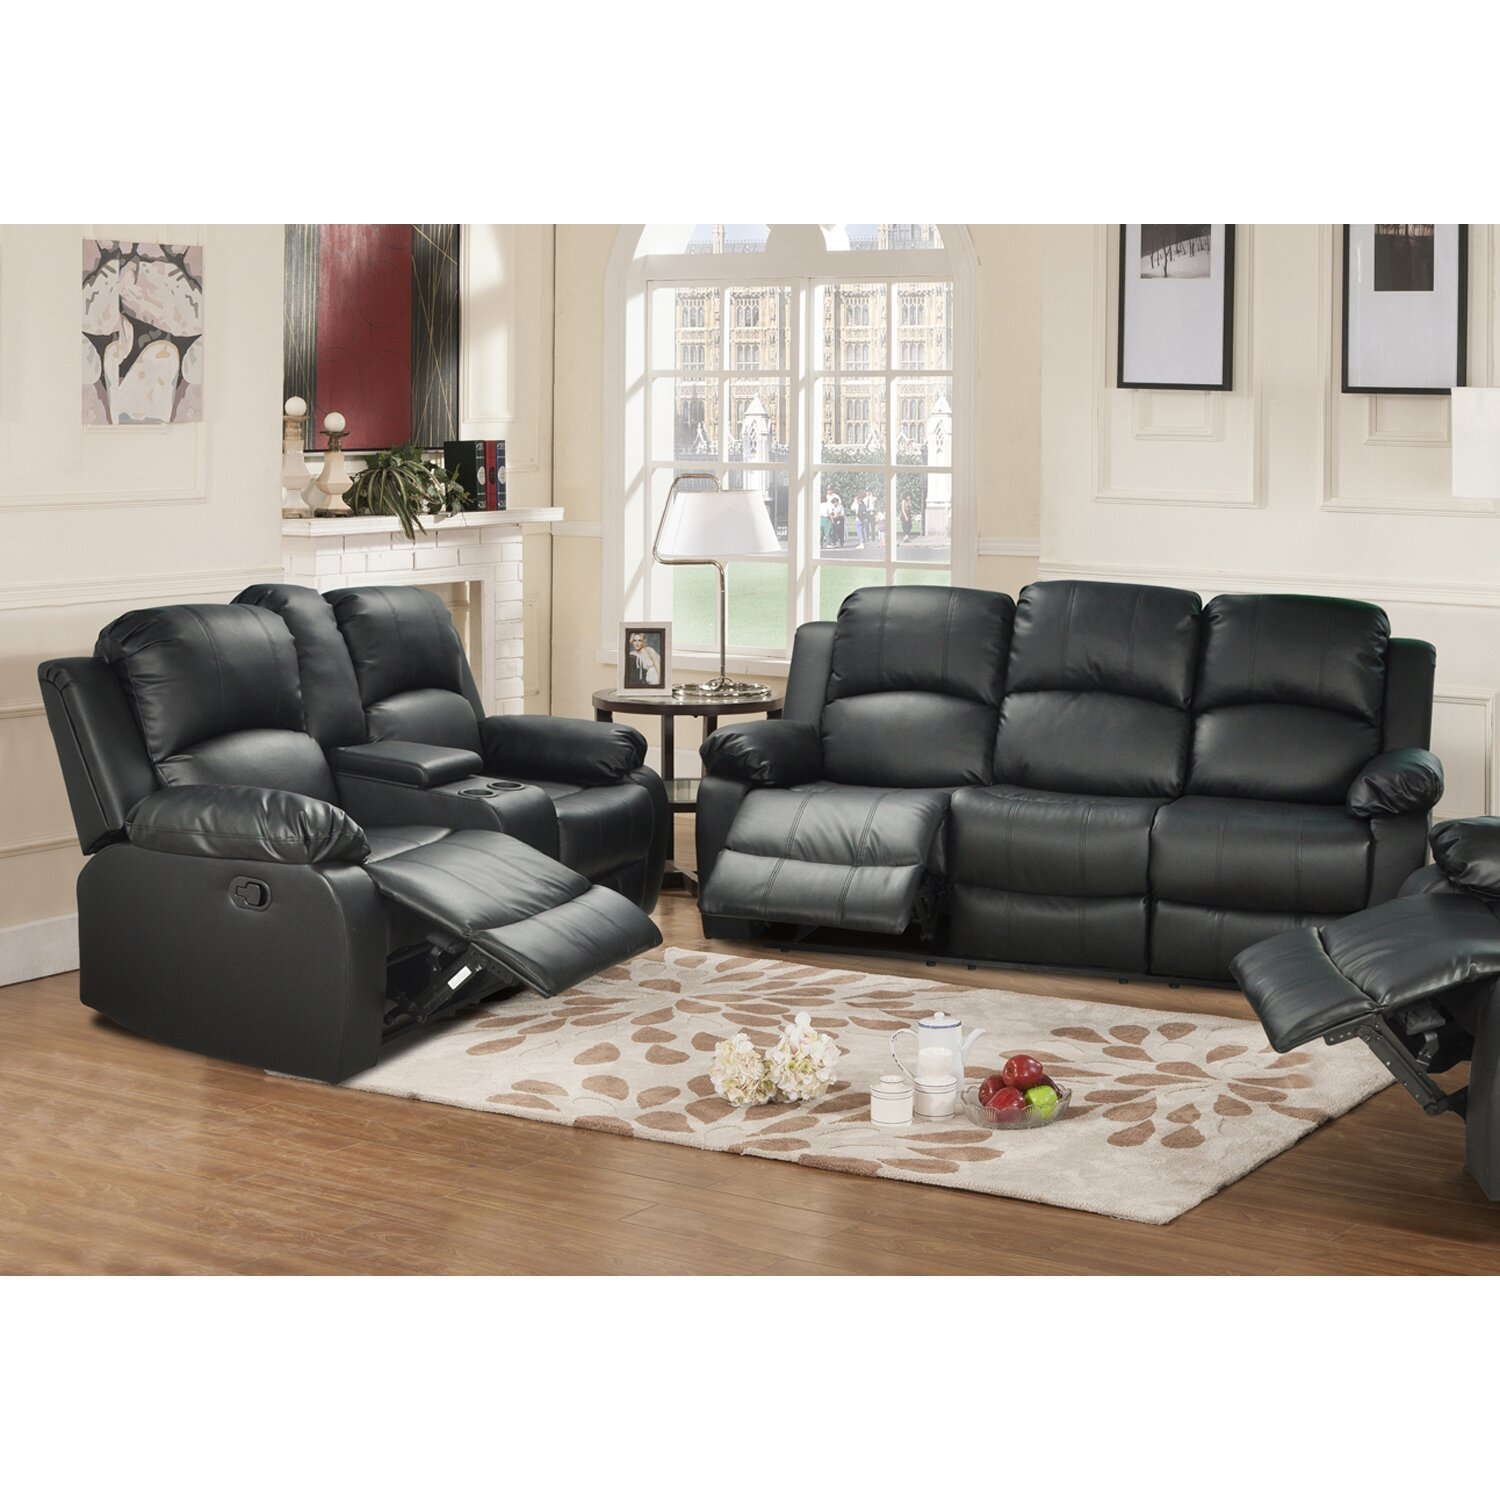 Beverly Fine Furniture Amado 2 Piece Leather Reclining